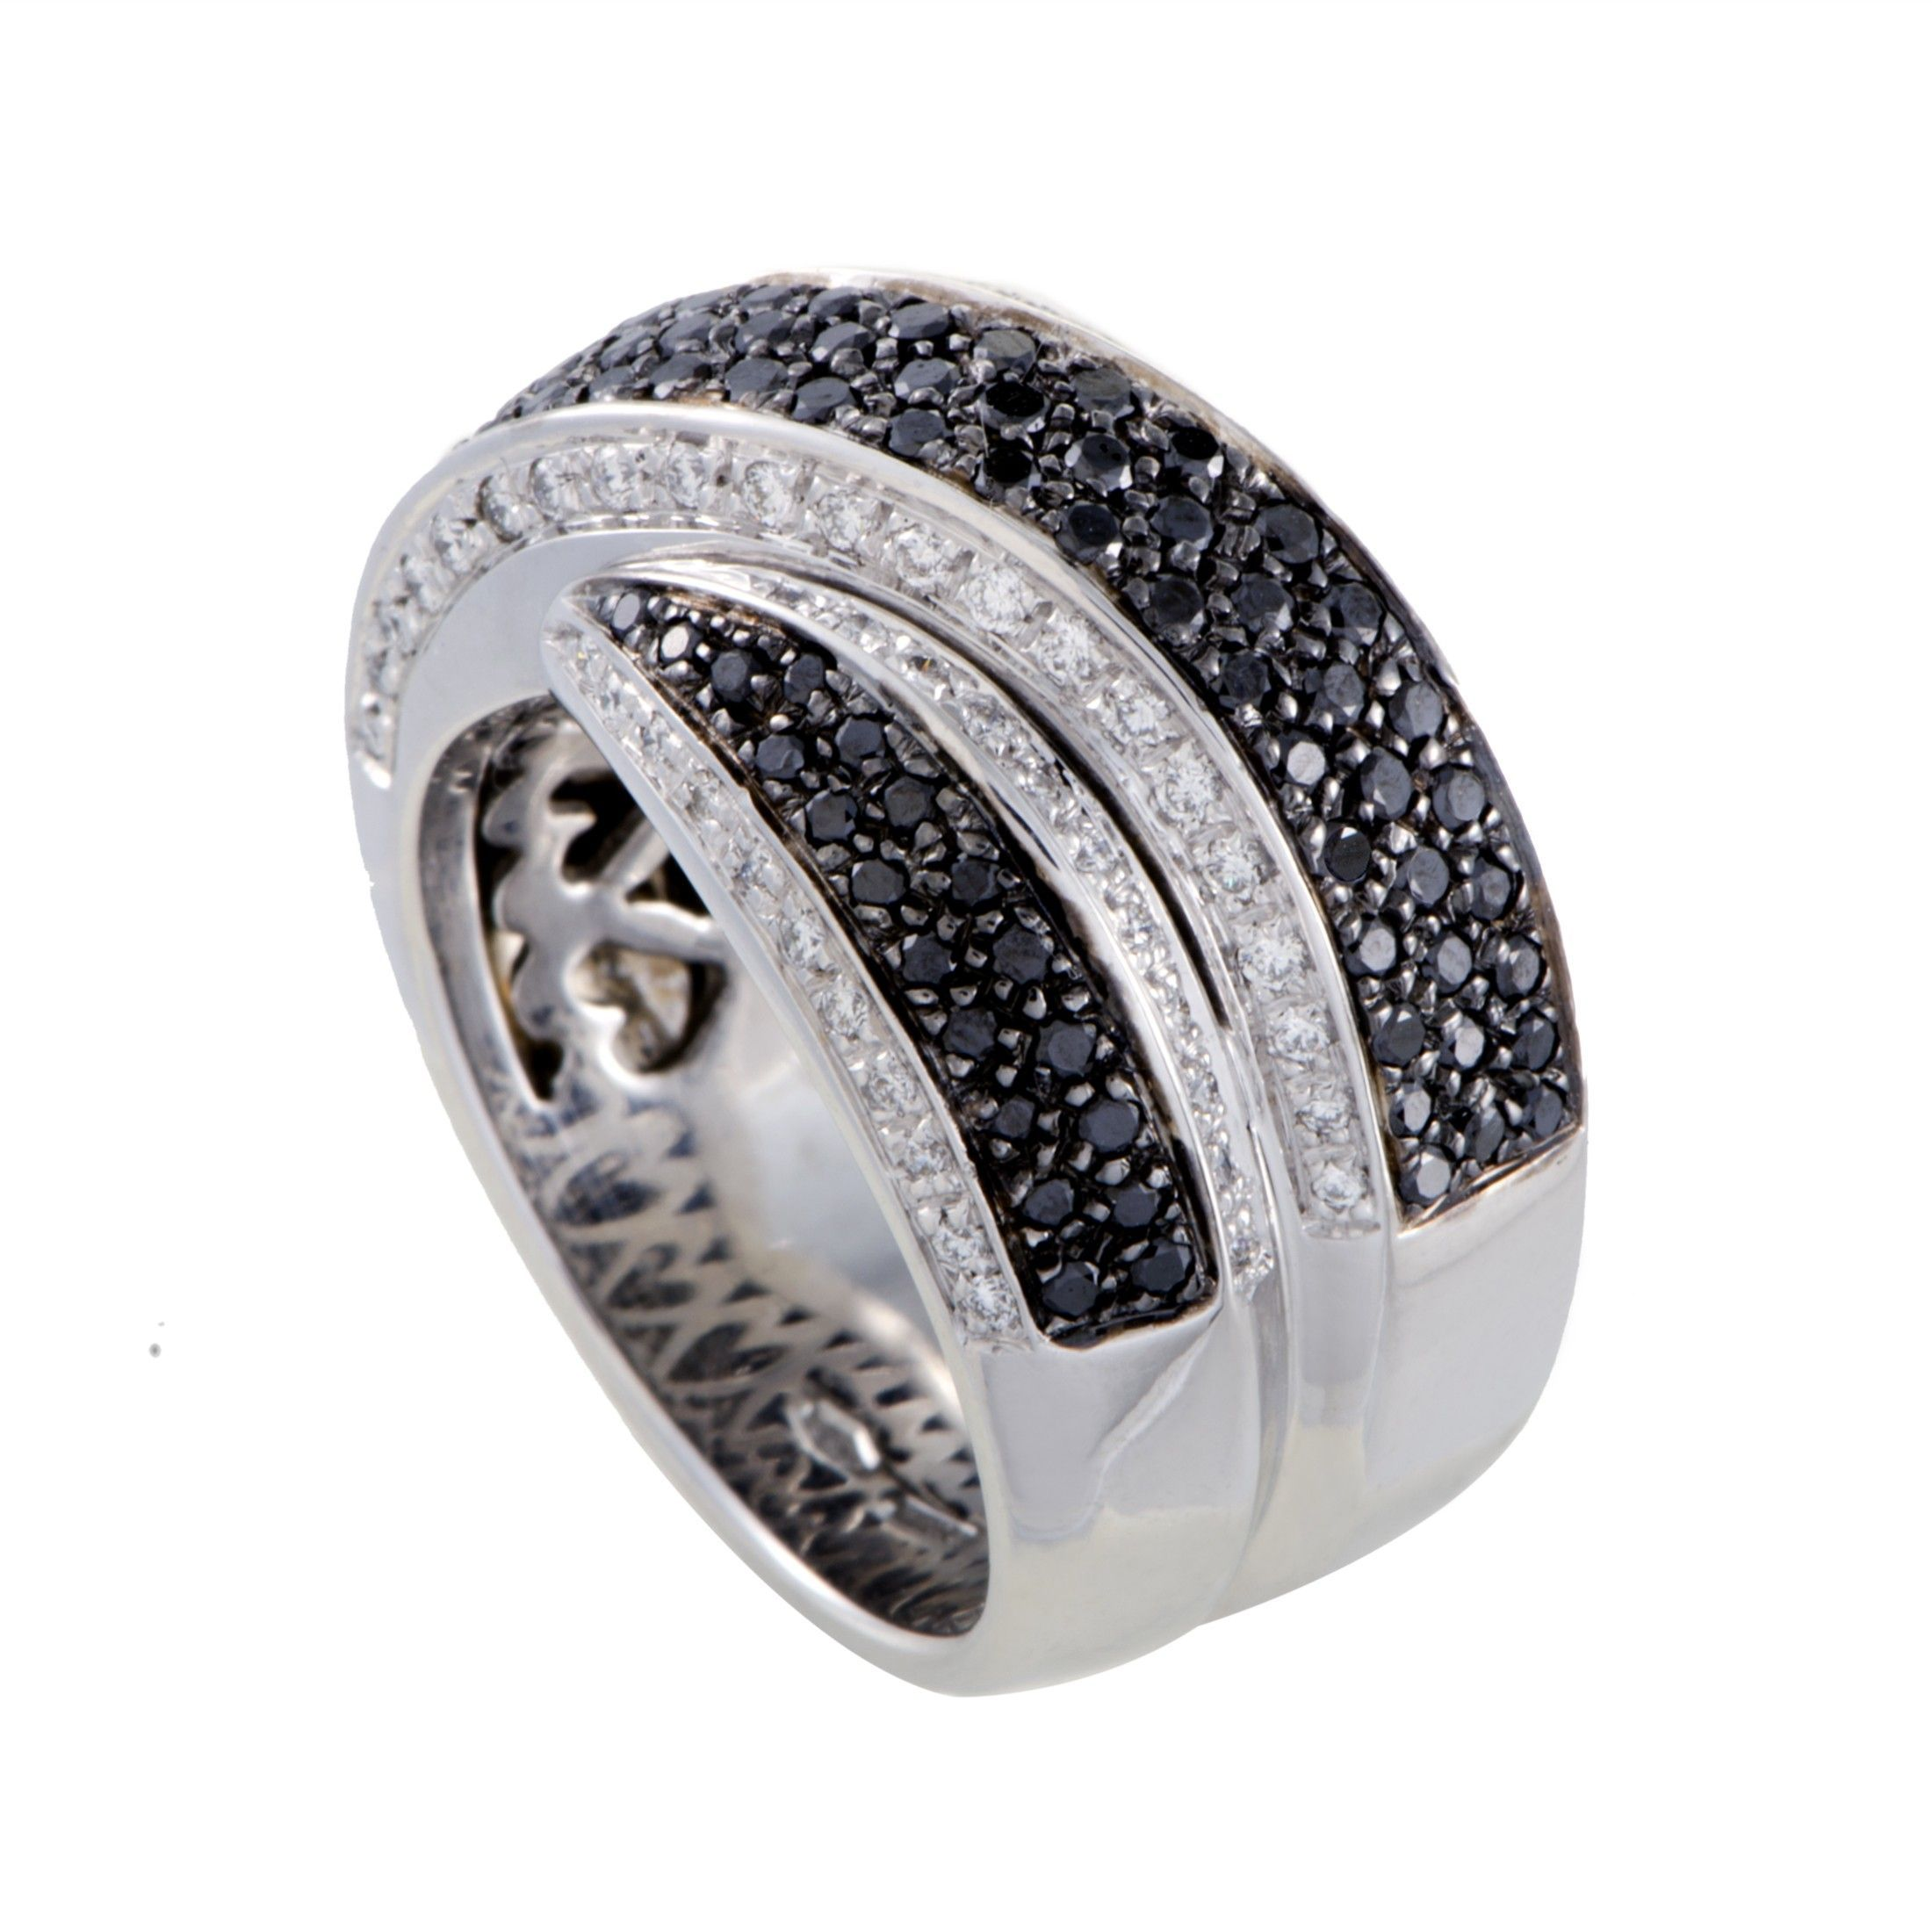 3bf60d15713a ... Leo Pizzo 18K White Gold White and Black Diamond Cross-over Wide Band  Ring ...